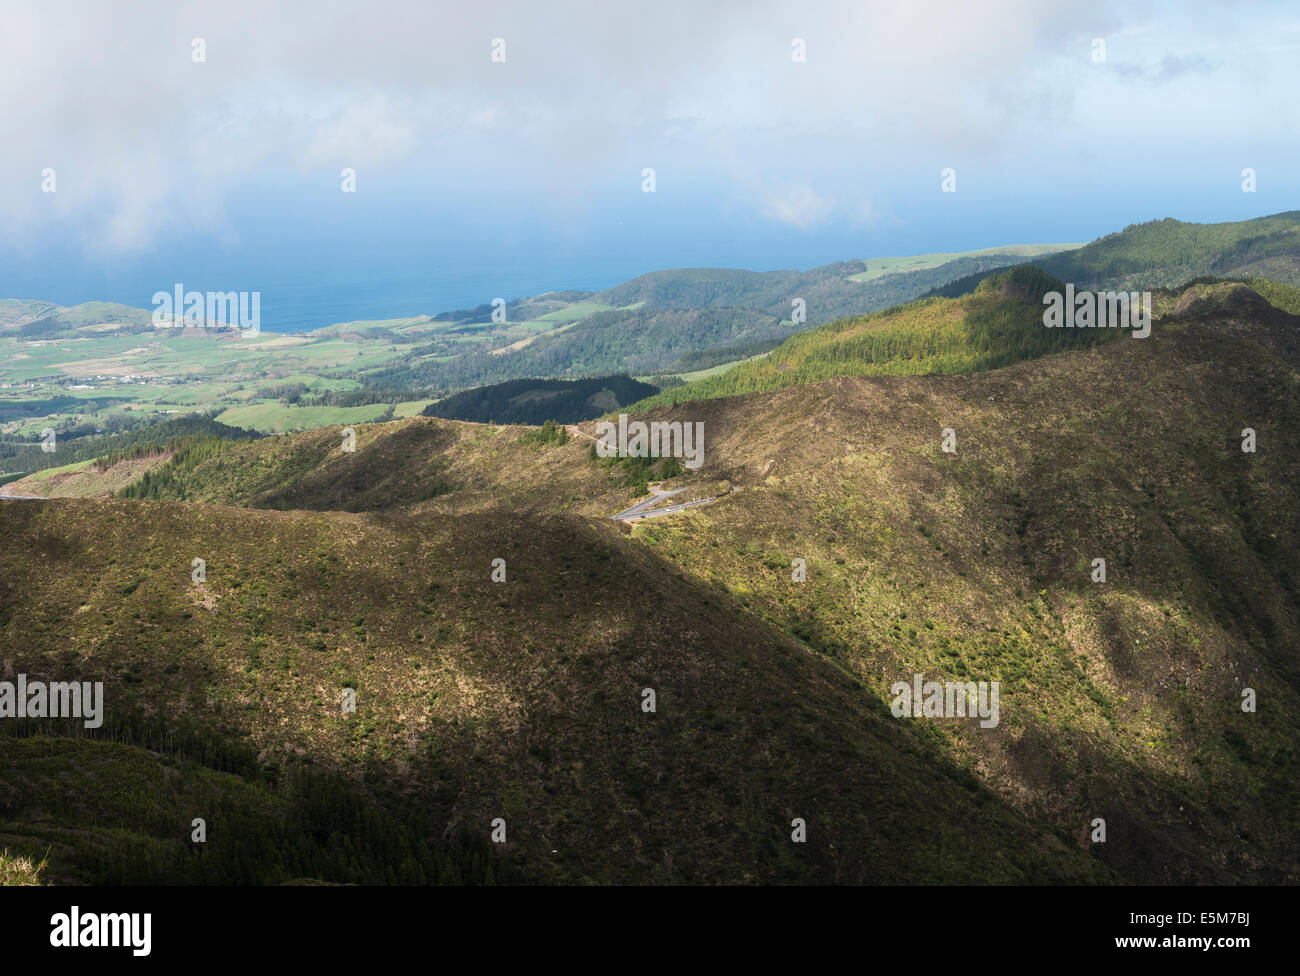 mountains, central S.Miguel Island,the Azores - Stock Image